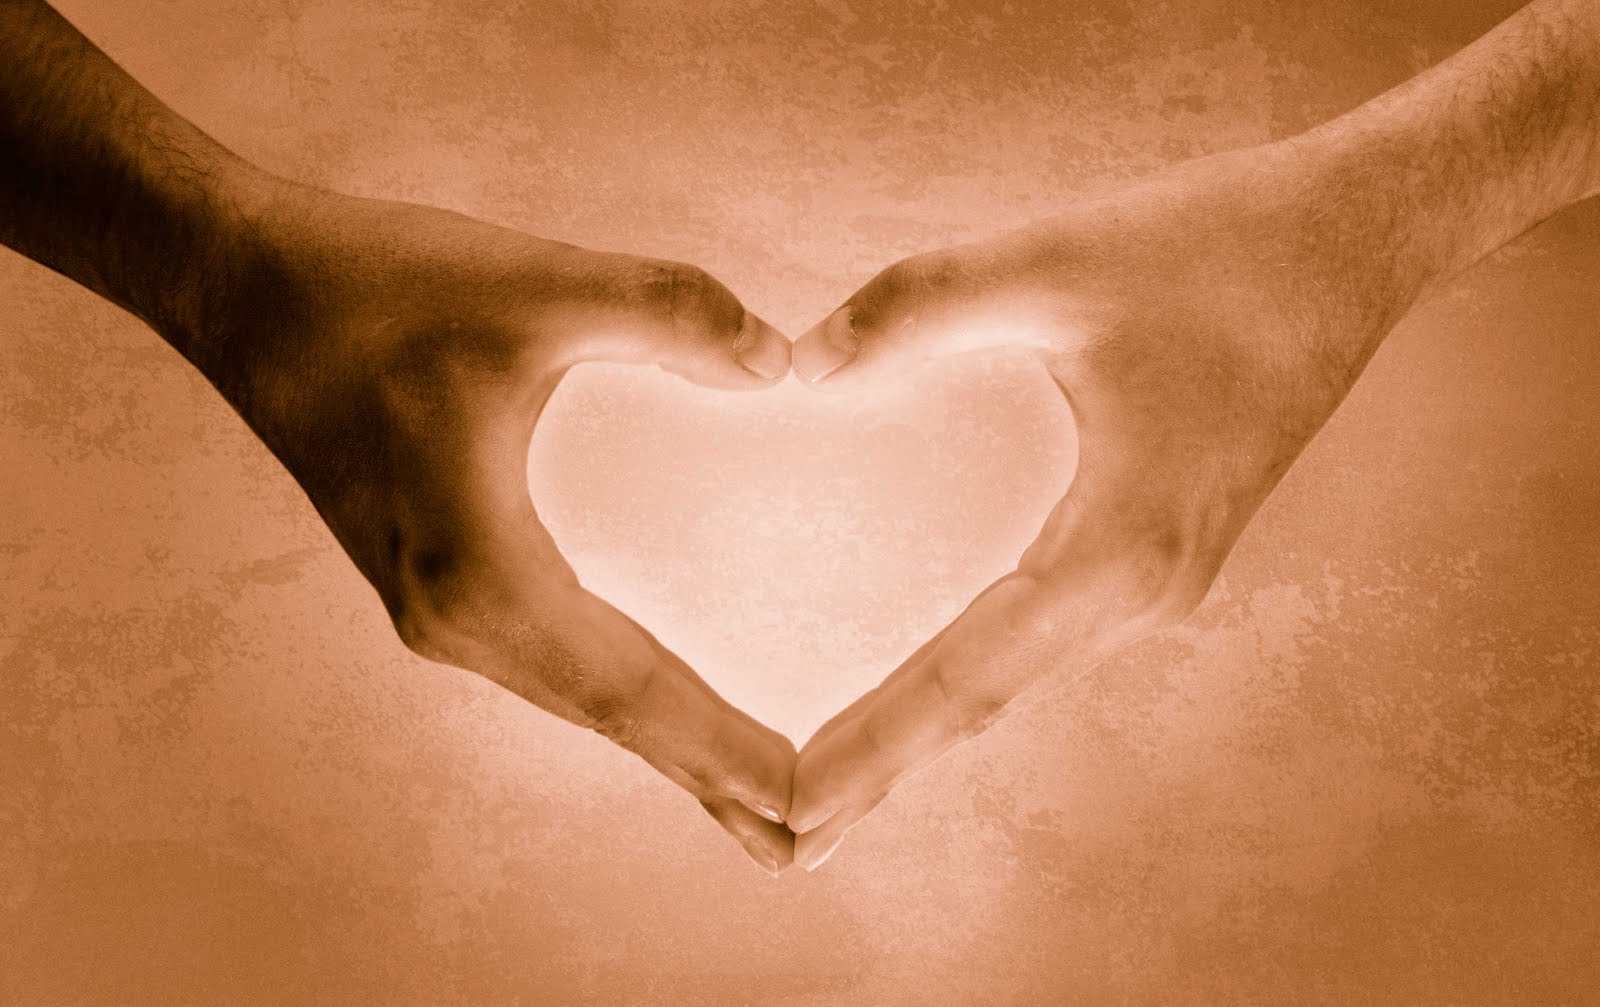 TRIBEWORK: Love From the Heart Into the Hand